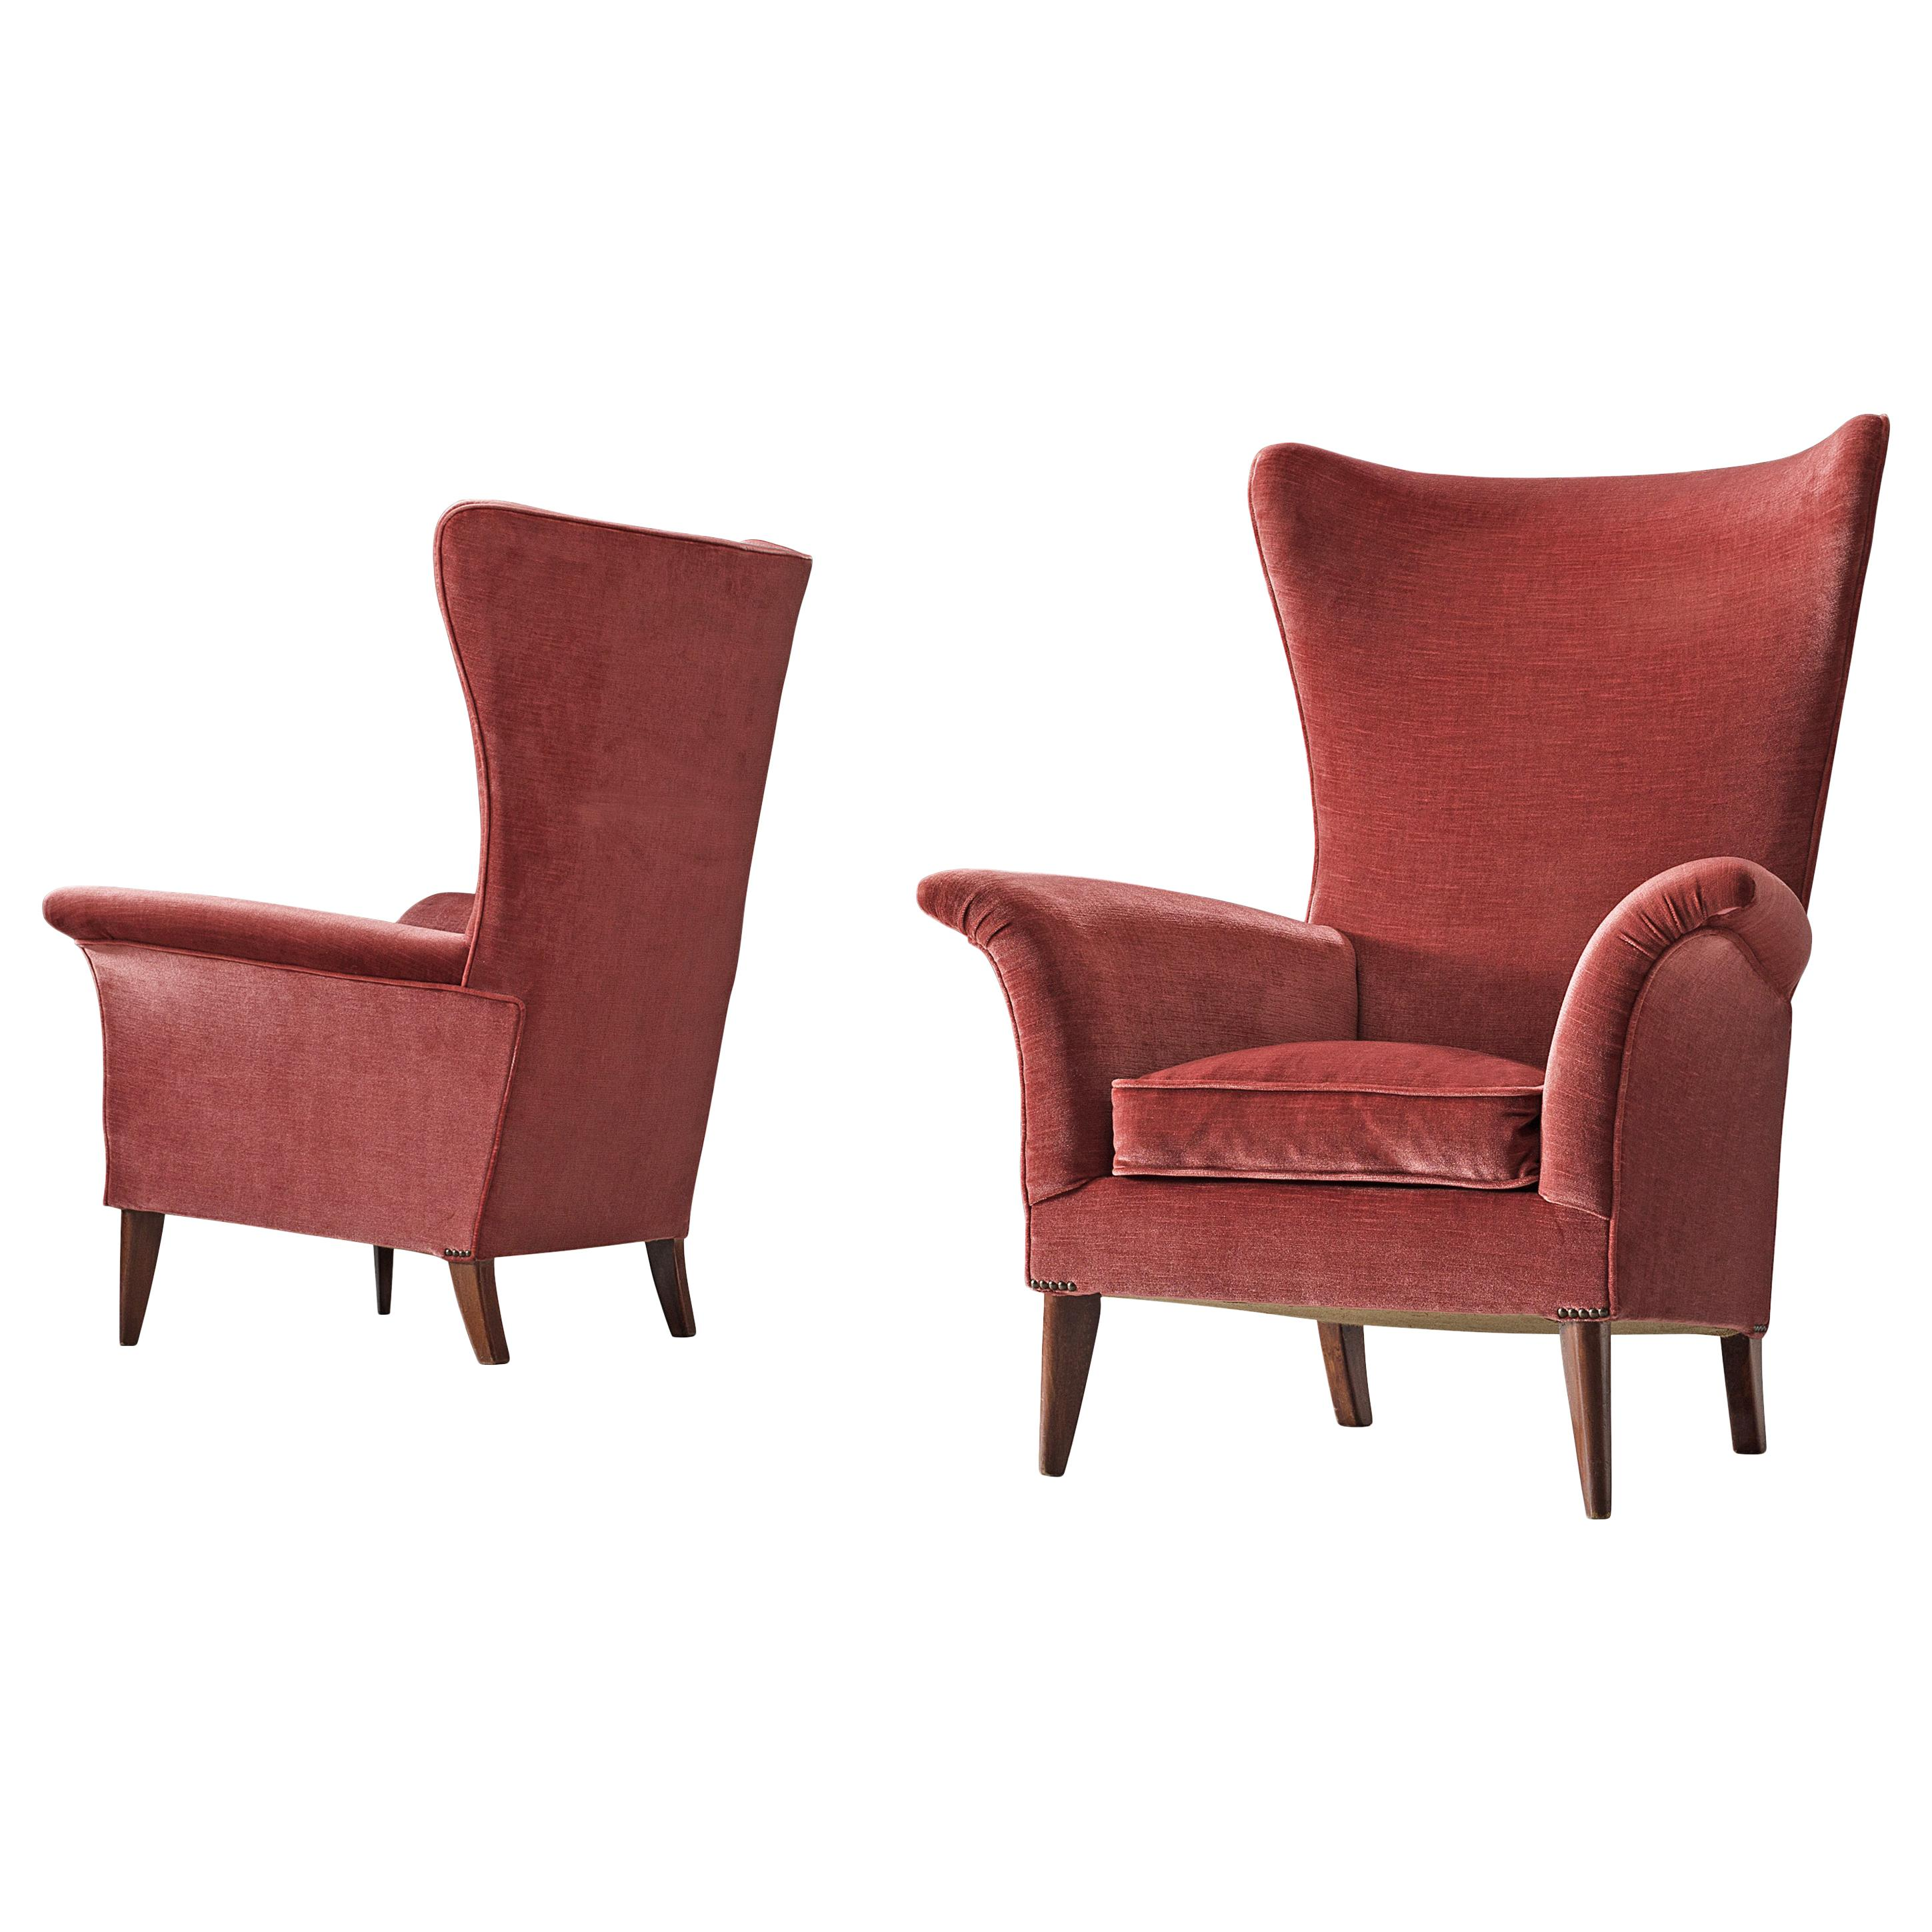 Pair of Two Italian Wingback Chairs in Red Velvet Upholstery